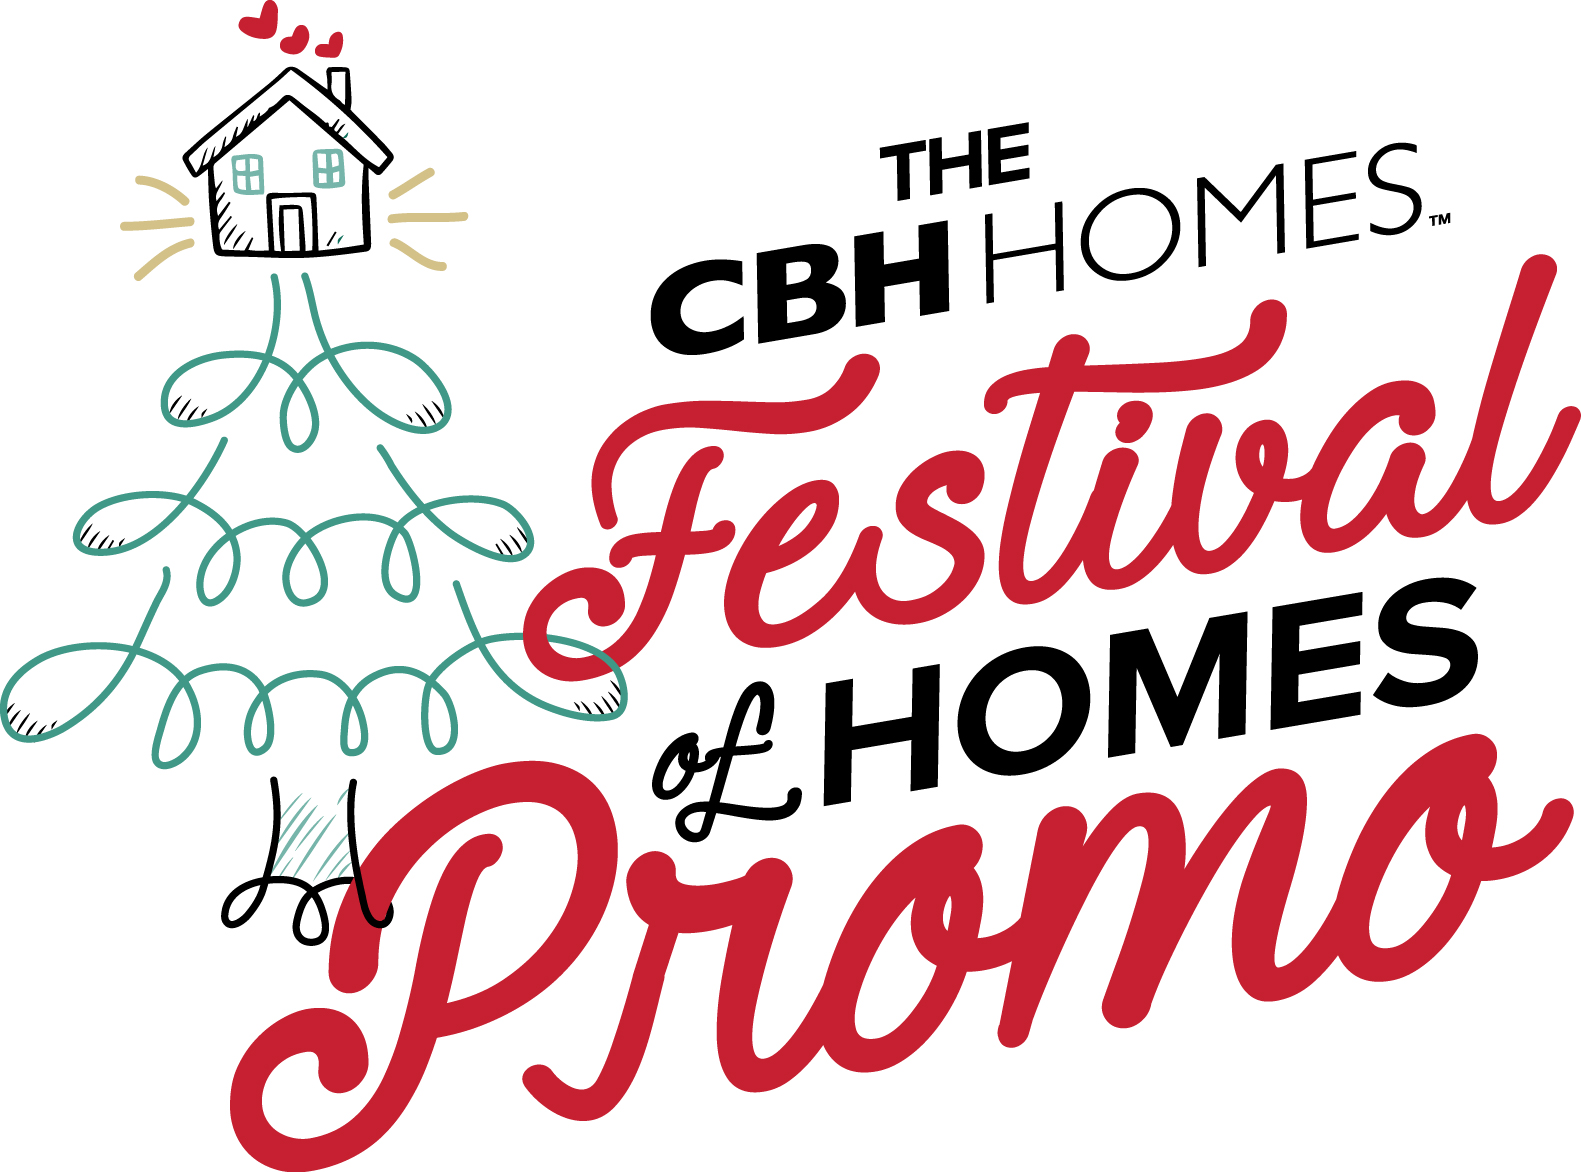 The Festival of Homes up to $10k Promo | CBH Homes - CBH Homes Blog